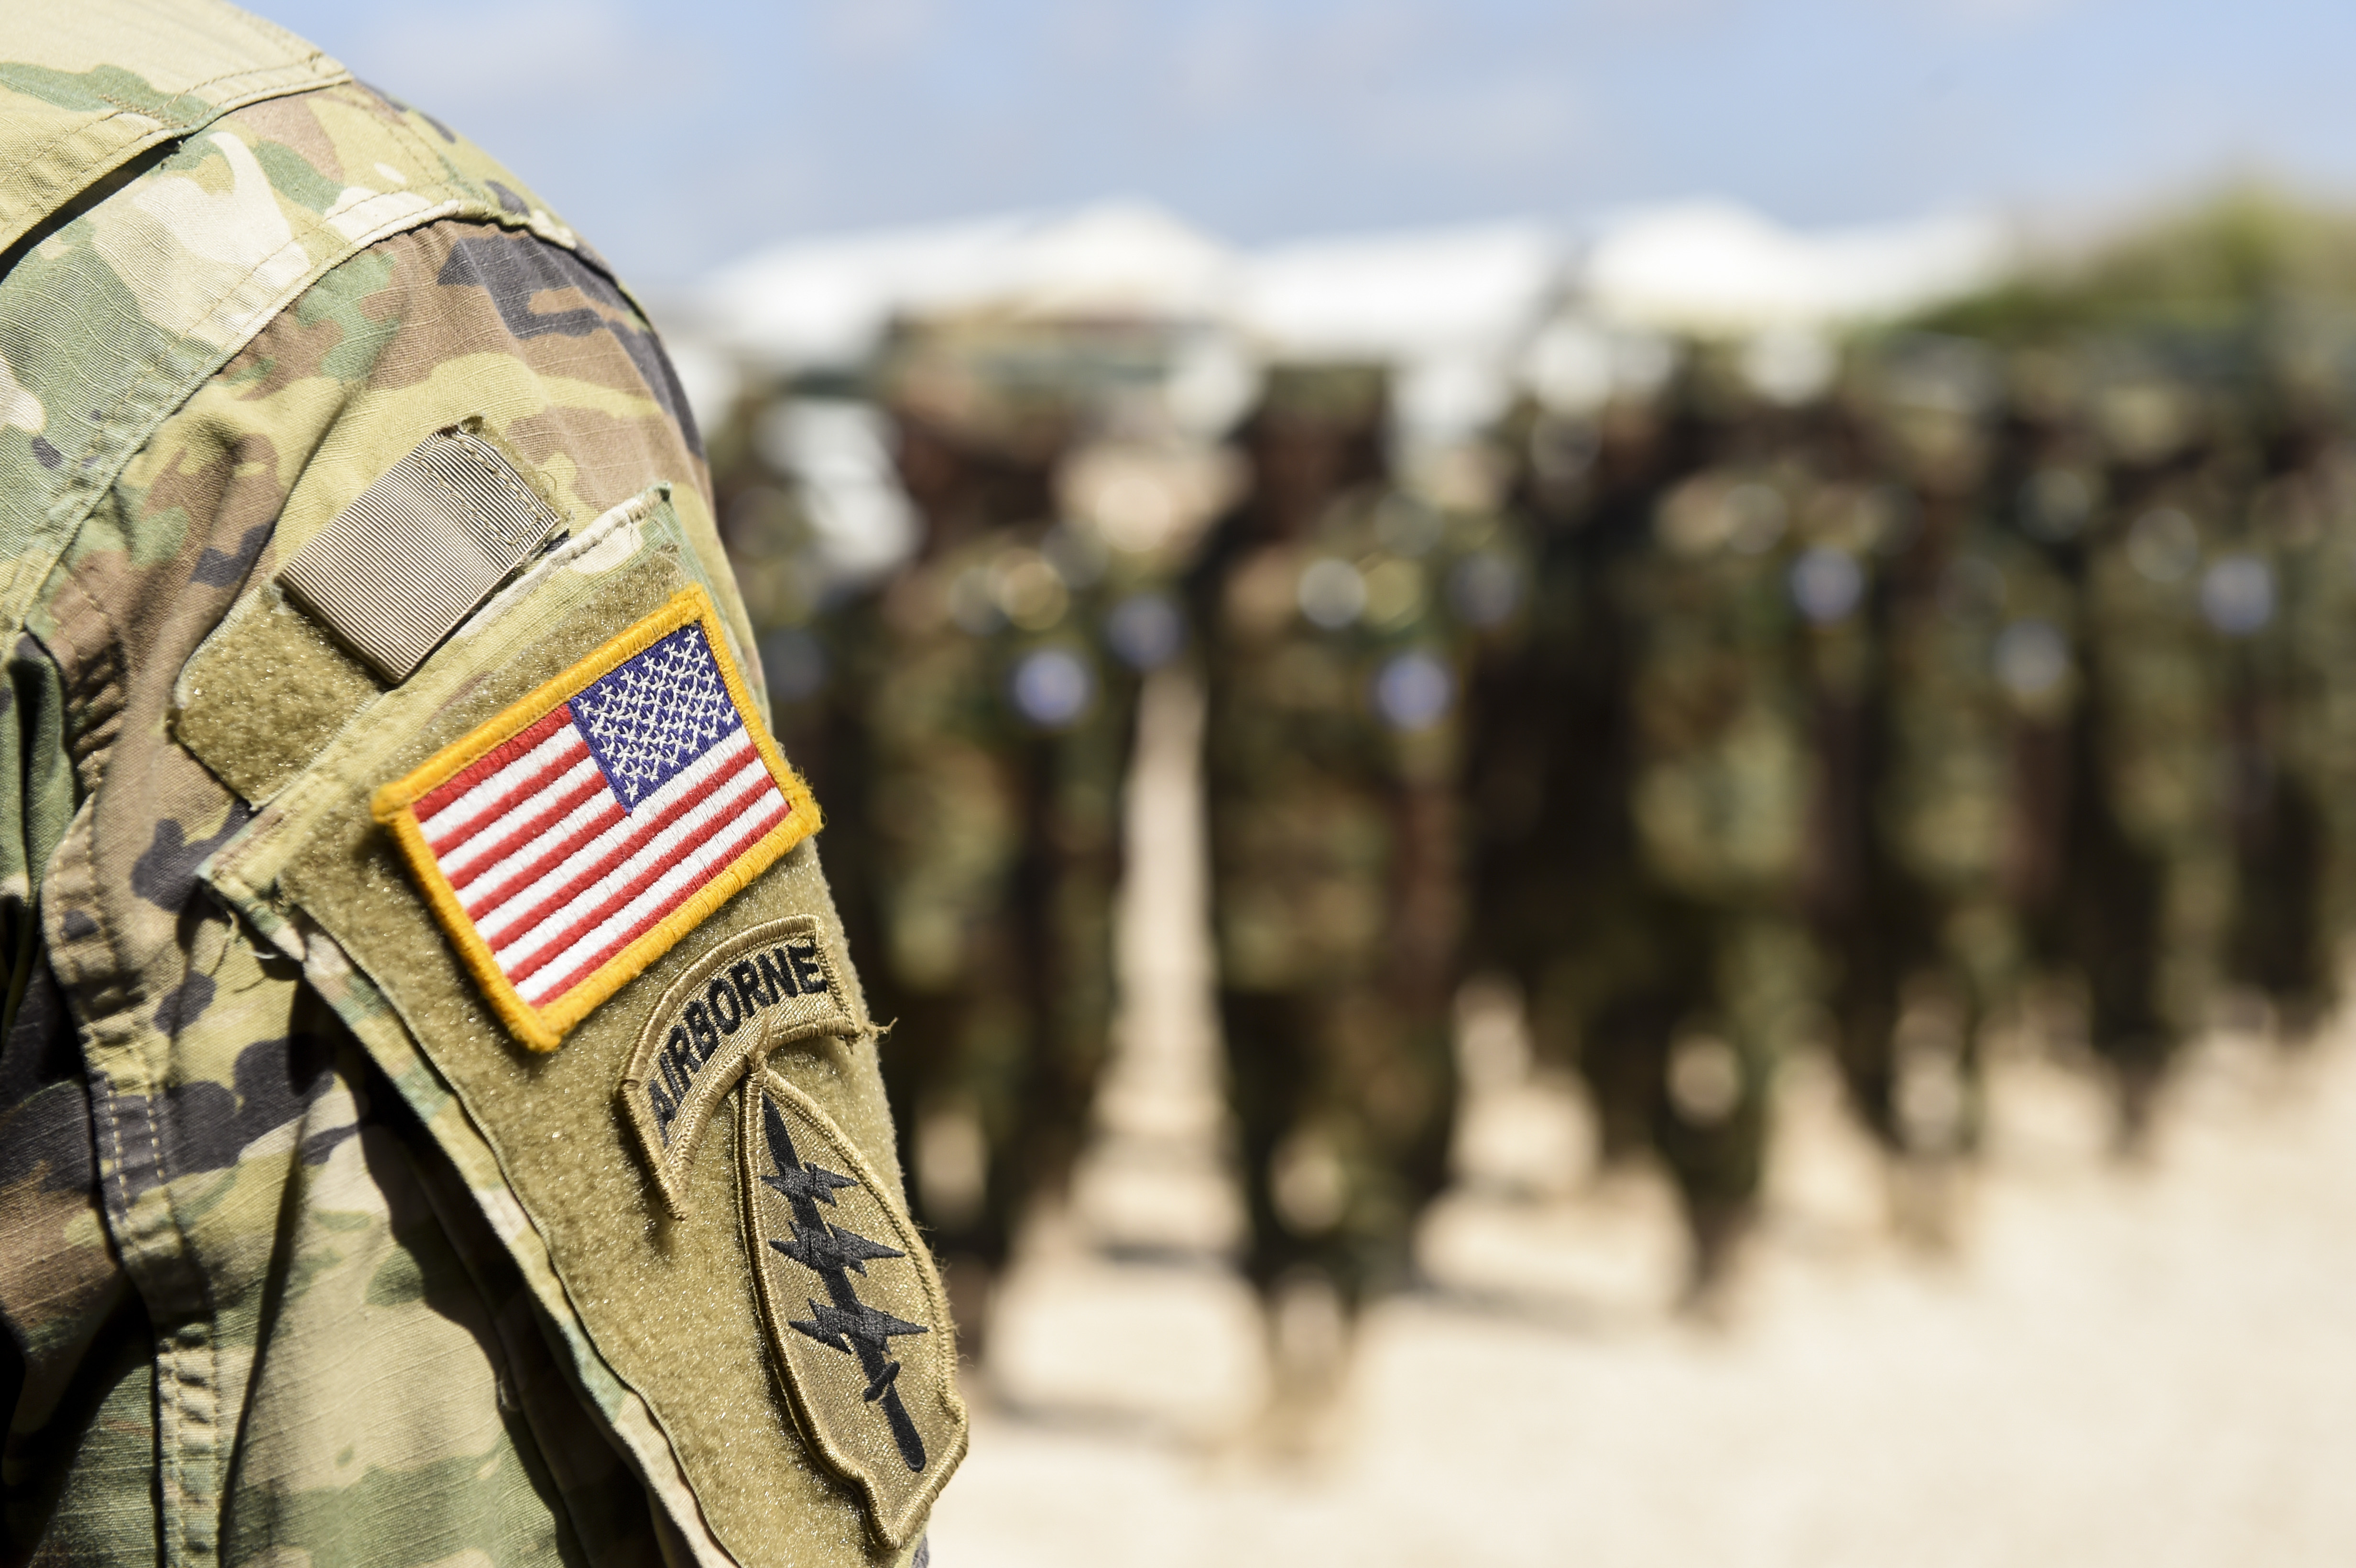 U.S. Army 101st Airborne Division soldiers deployed with U.S. Army Forces Africa stand with Somali National Army soldiers during a graduation ceremony May 24, 2017, in Mogadishu, Somalia. The logistics course focused on various aspects of moving personnel, equipment and supplies. (U.S. Air Force photo by Staff Sgt. Nicholas M. Byers)